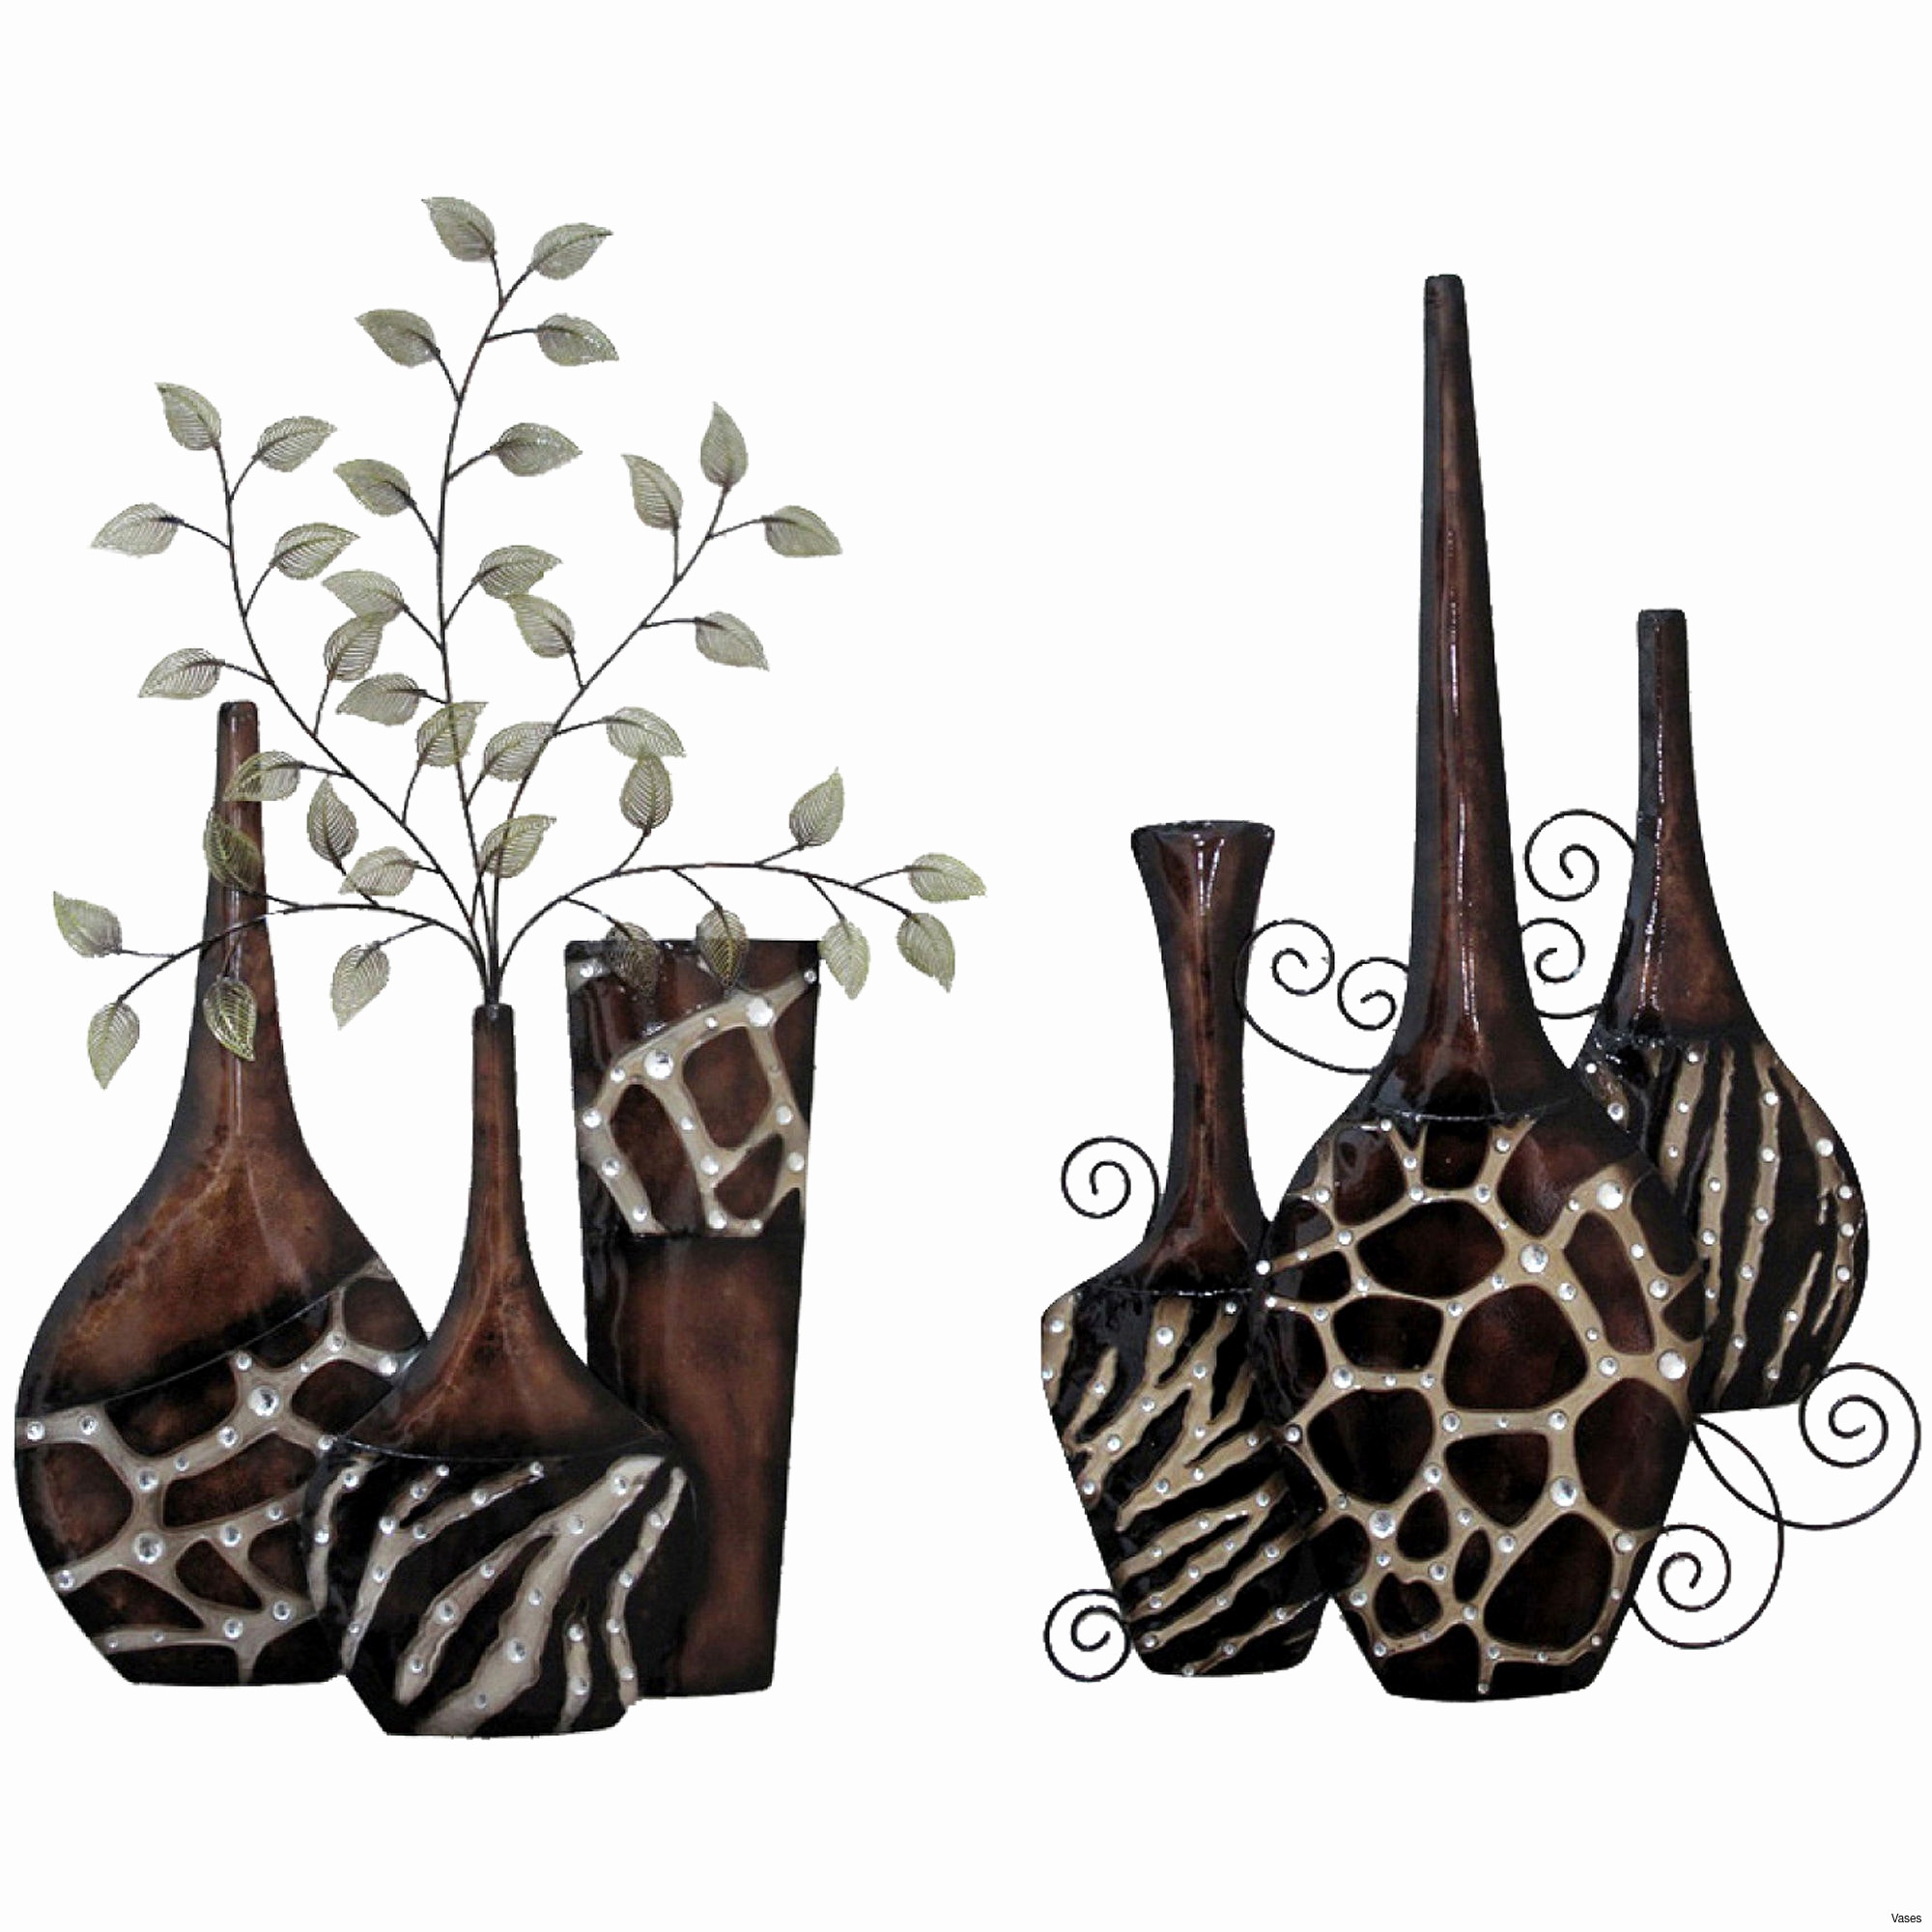 Bamboo Floor Vase Of Decoration Vase Nouveau Floor Vases Home Decor Living Room Luxury with Regard to Bamboo Vase 0d Decoration Vase A‰lagant Img 6792h Vases Leopard Print Vase Decorating with Animal Printi 0d